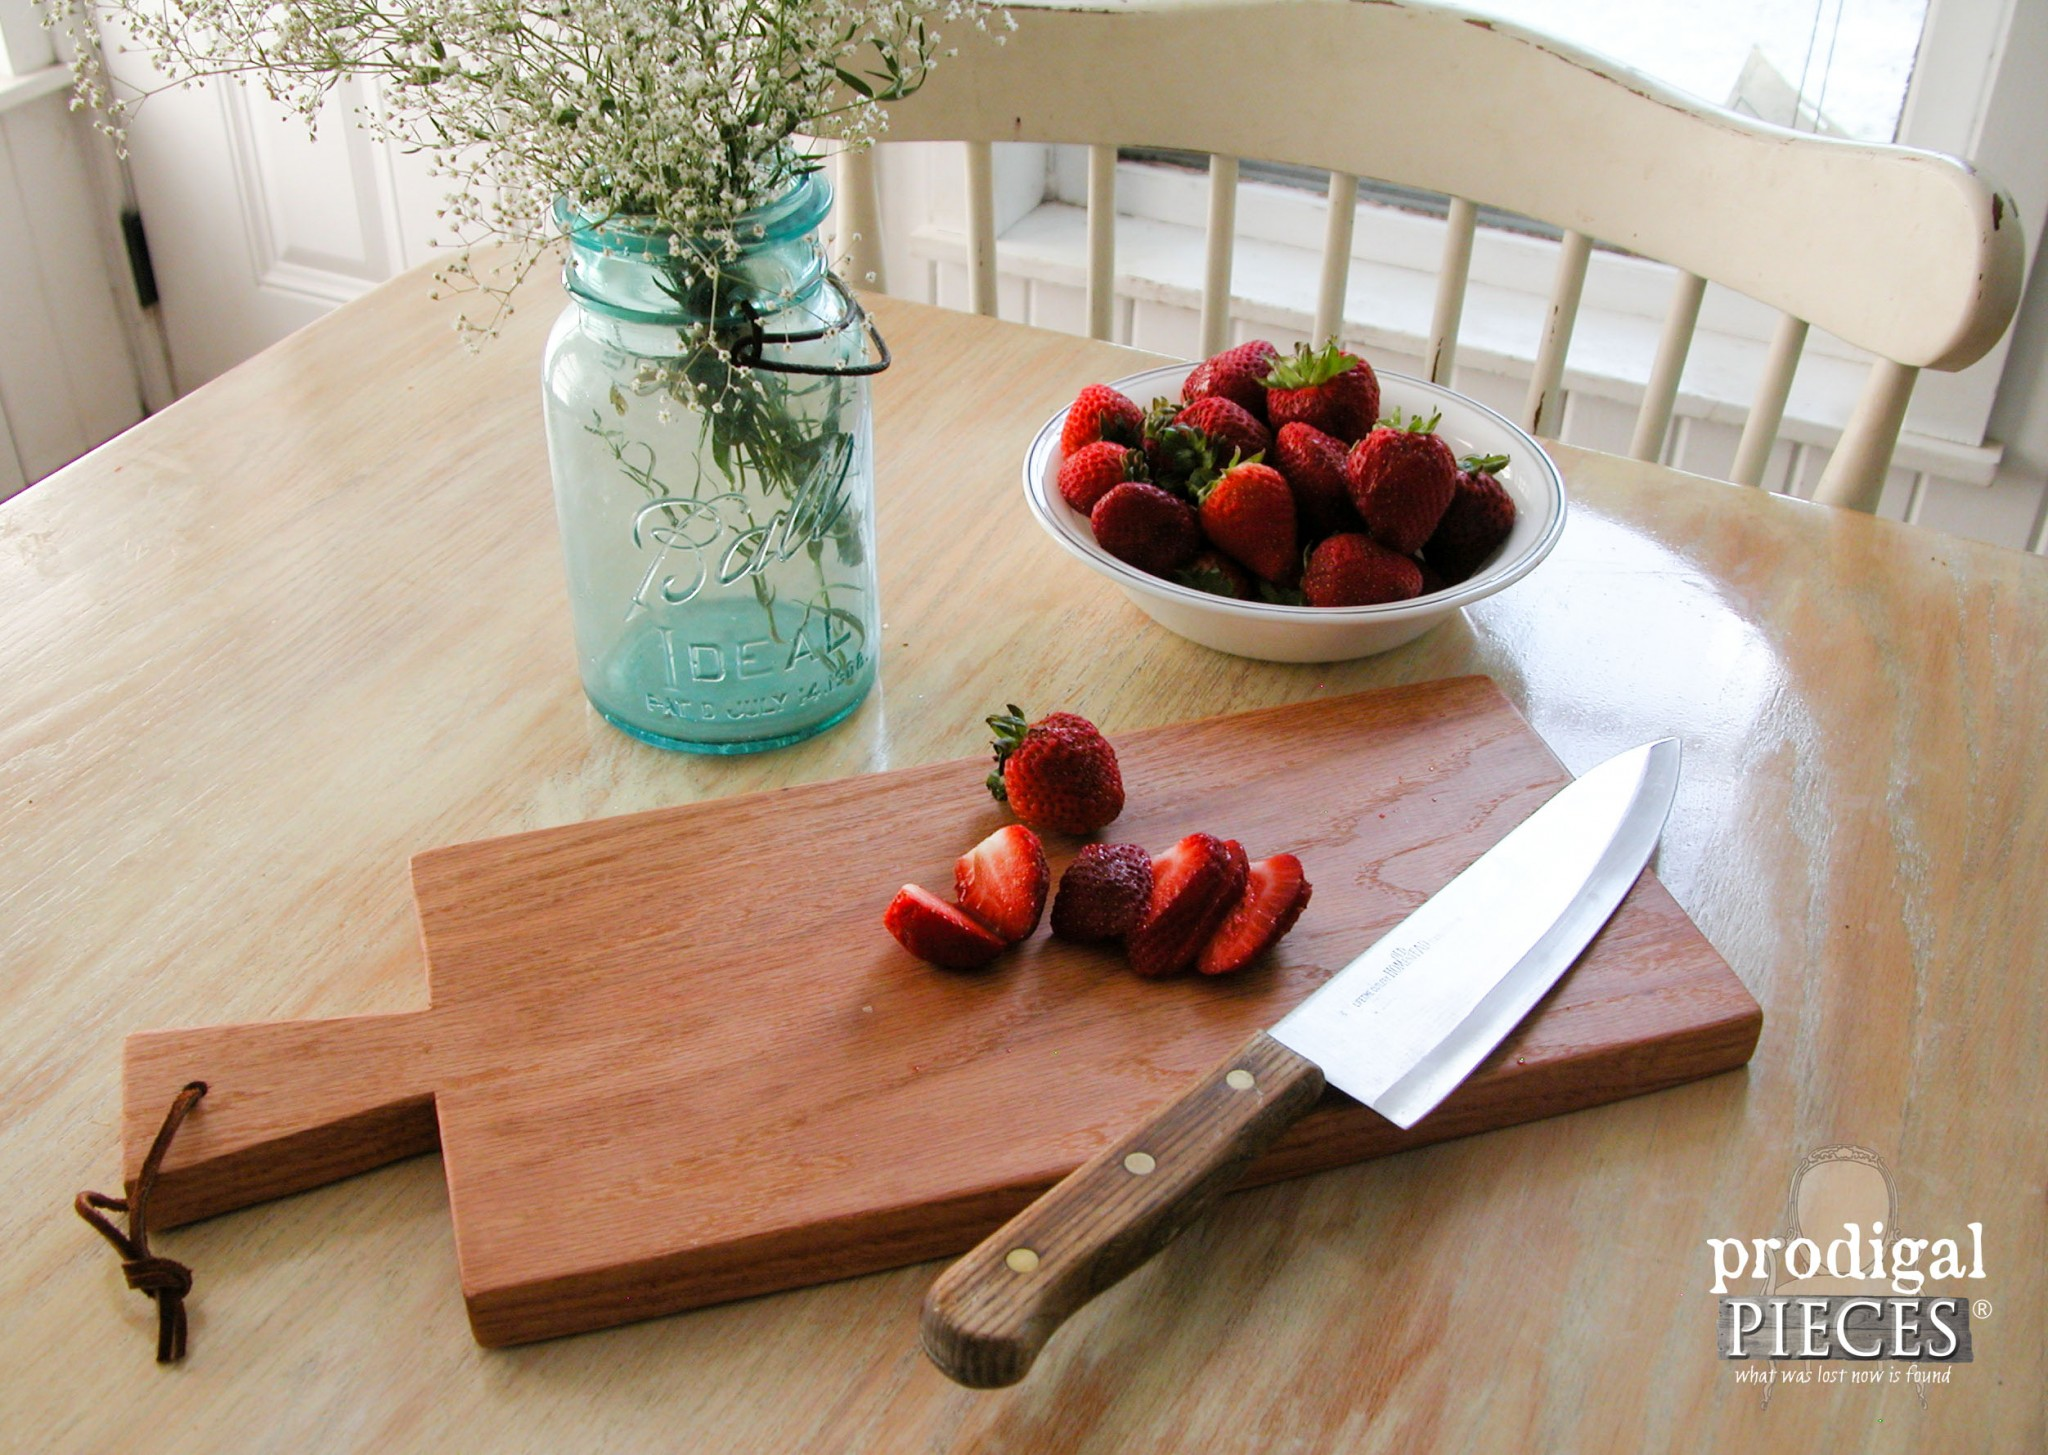 Solid Oak Cutting Board DIY by Prodigal Pieces | www.prodigalpieces.com